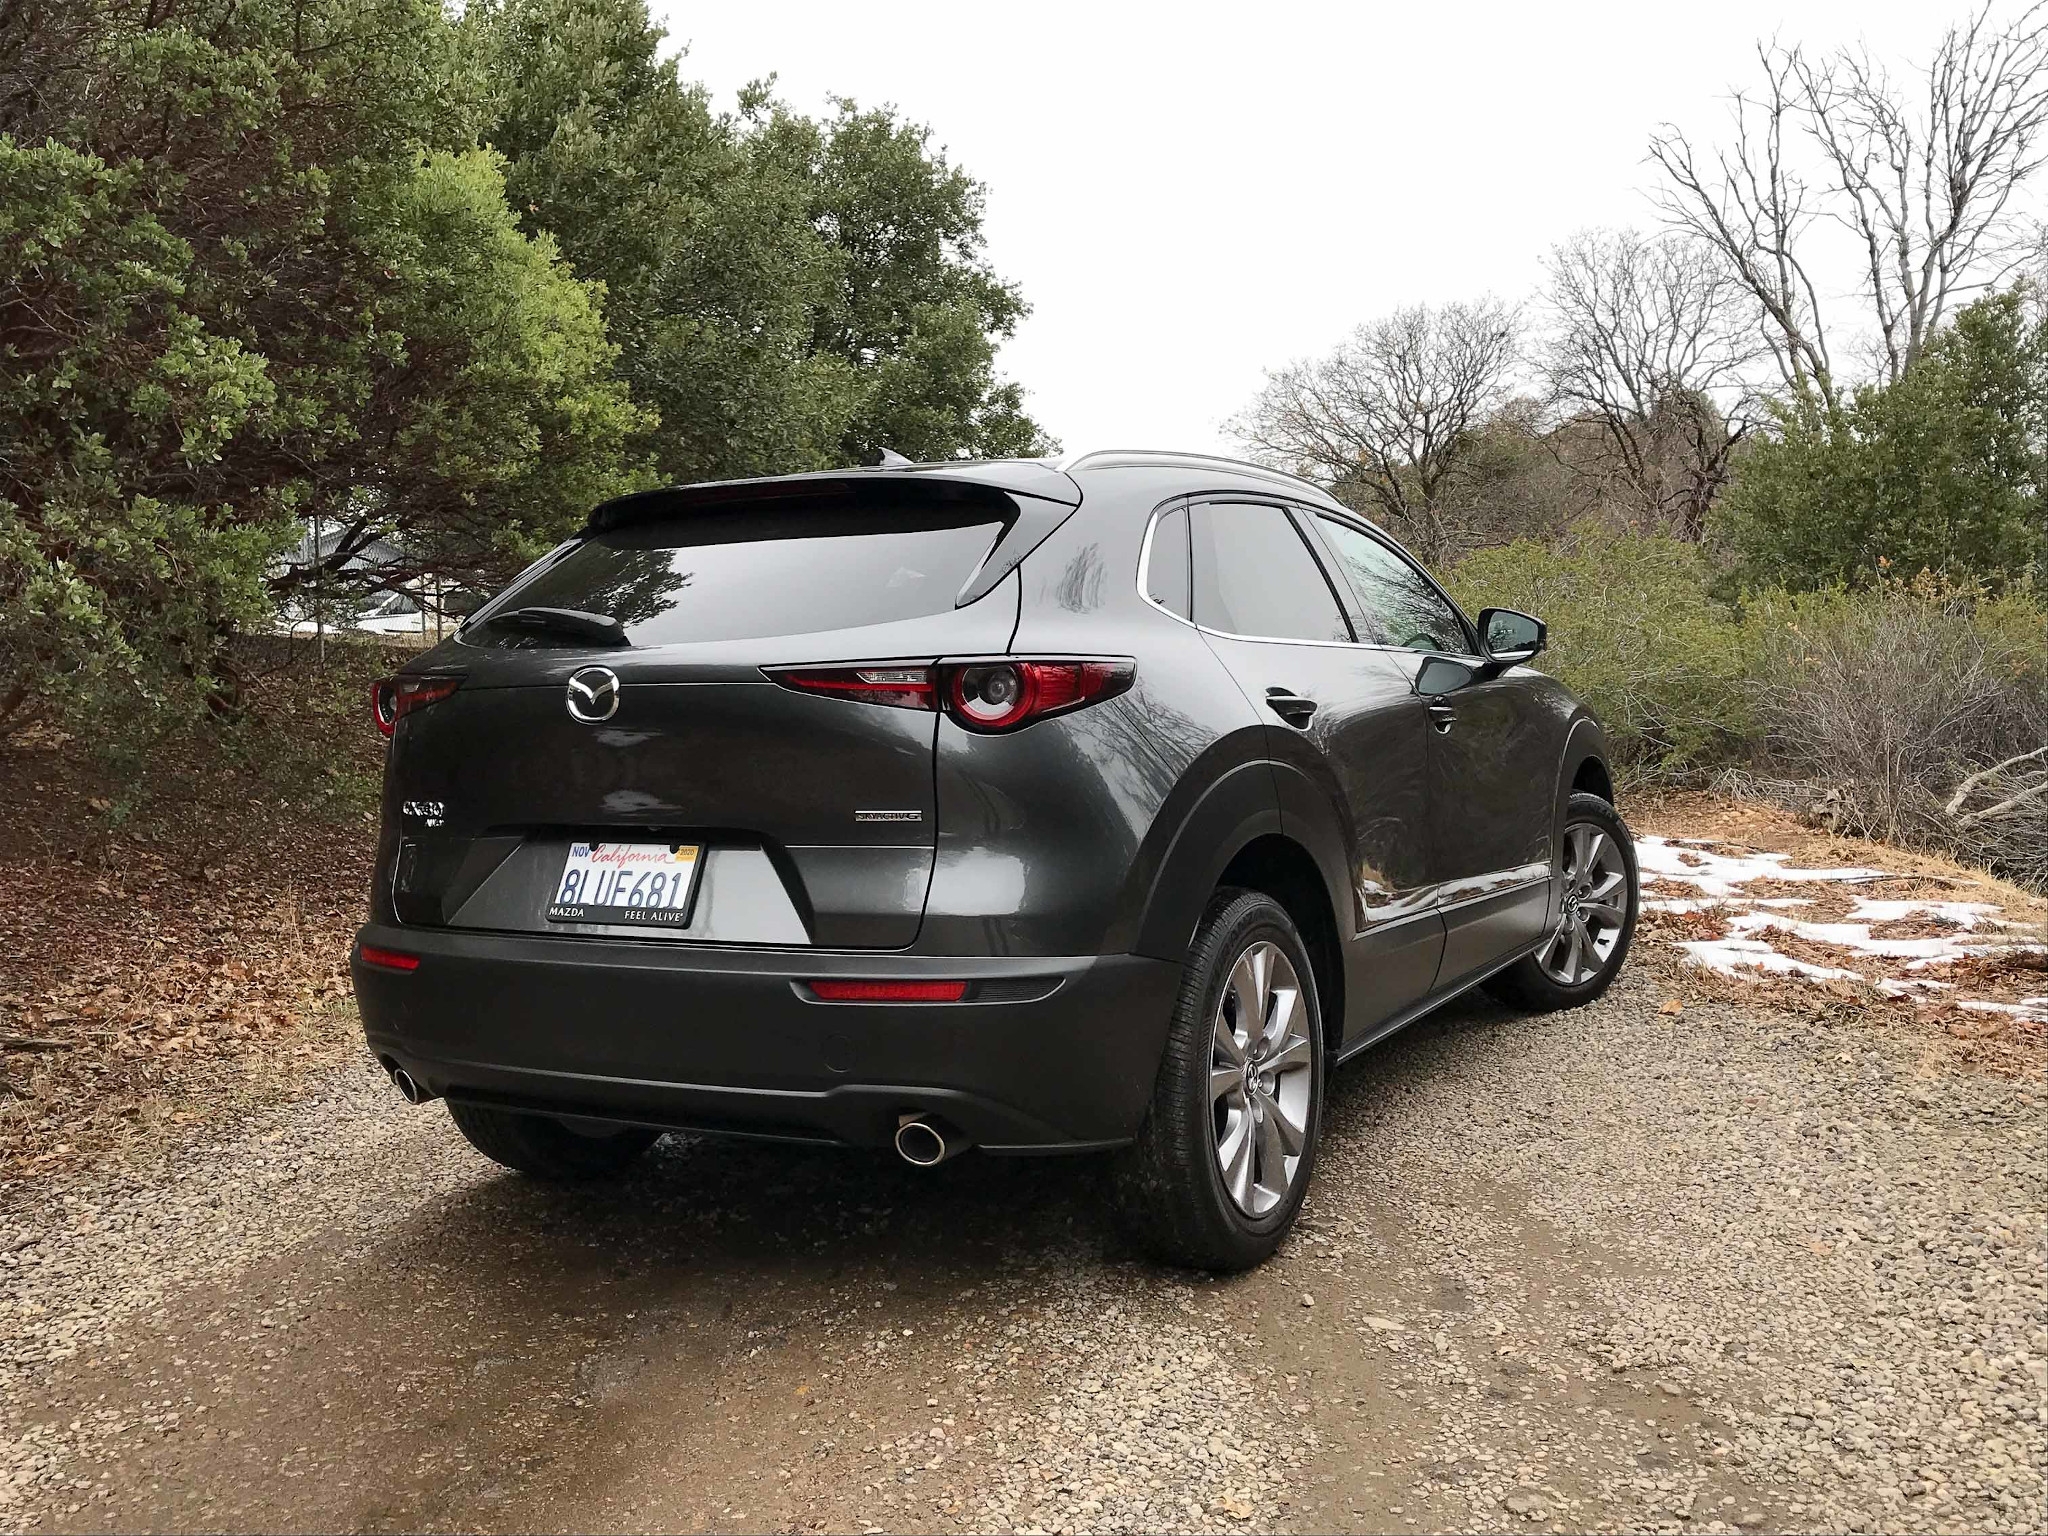 2020 Mazda Cx 30 5 Things We Like And 3 Not So Much News